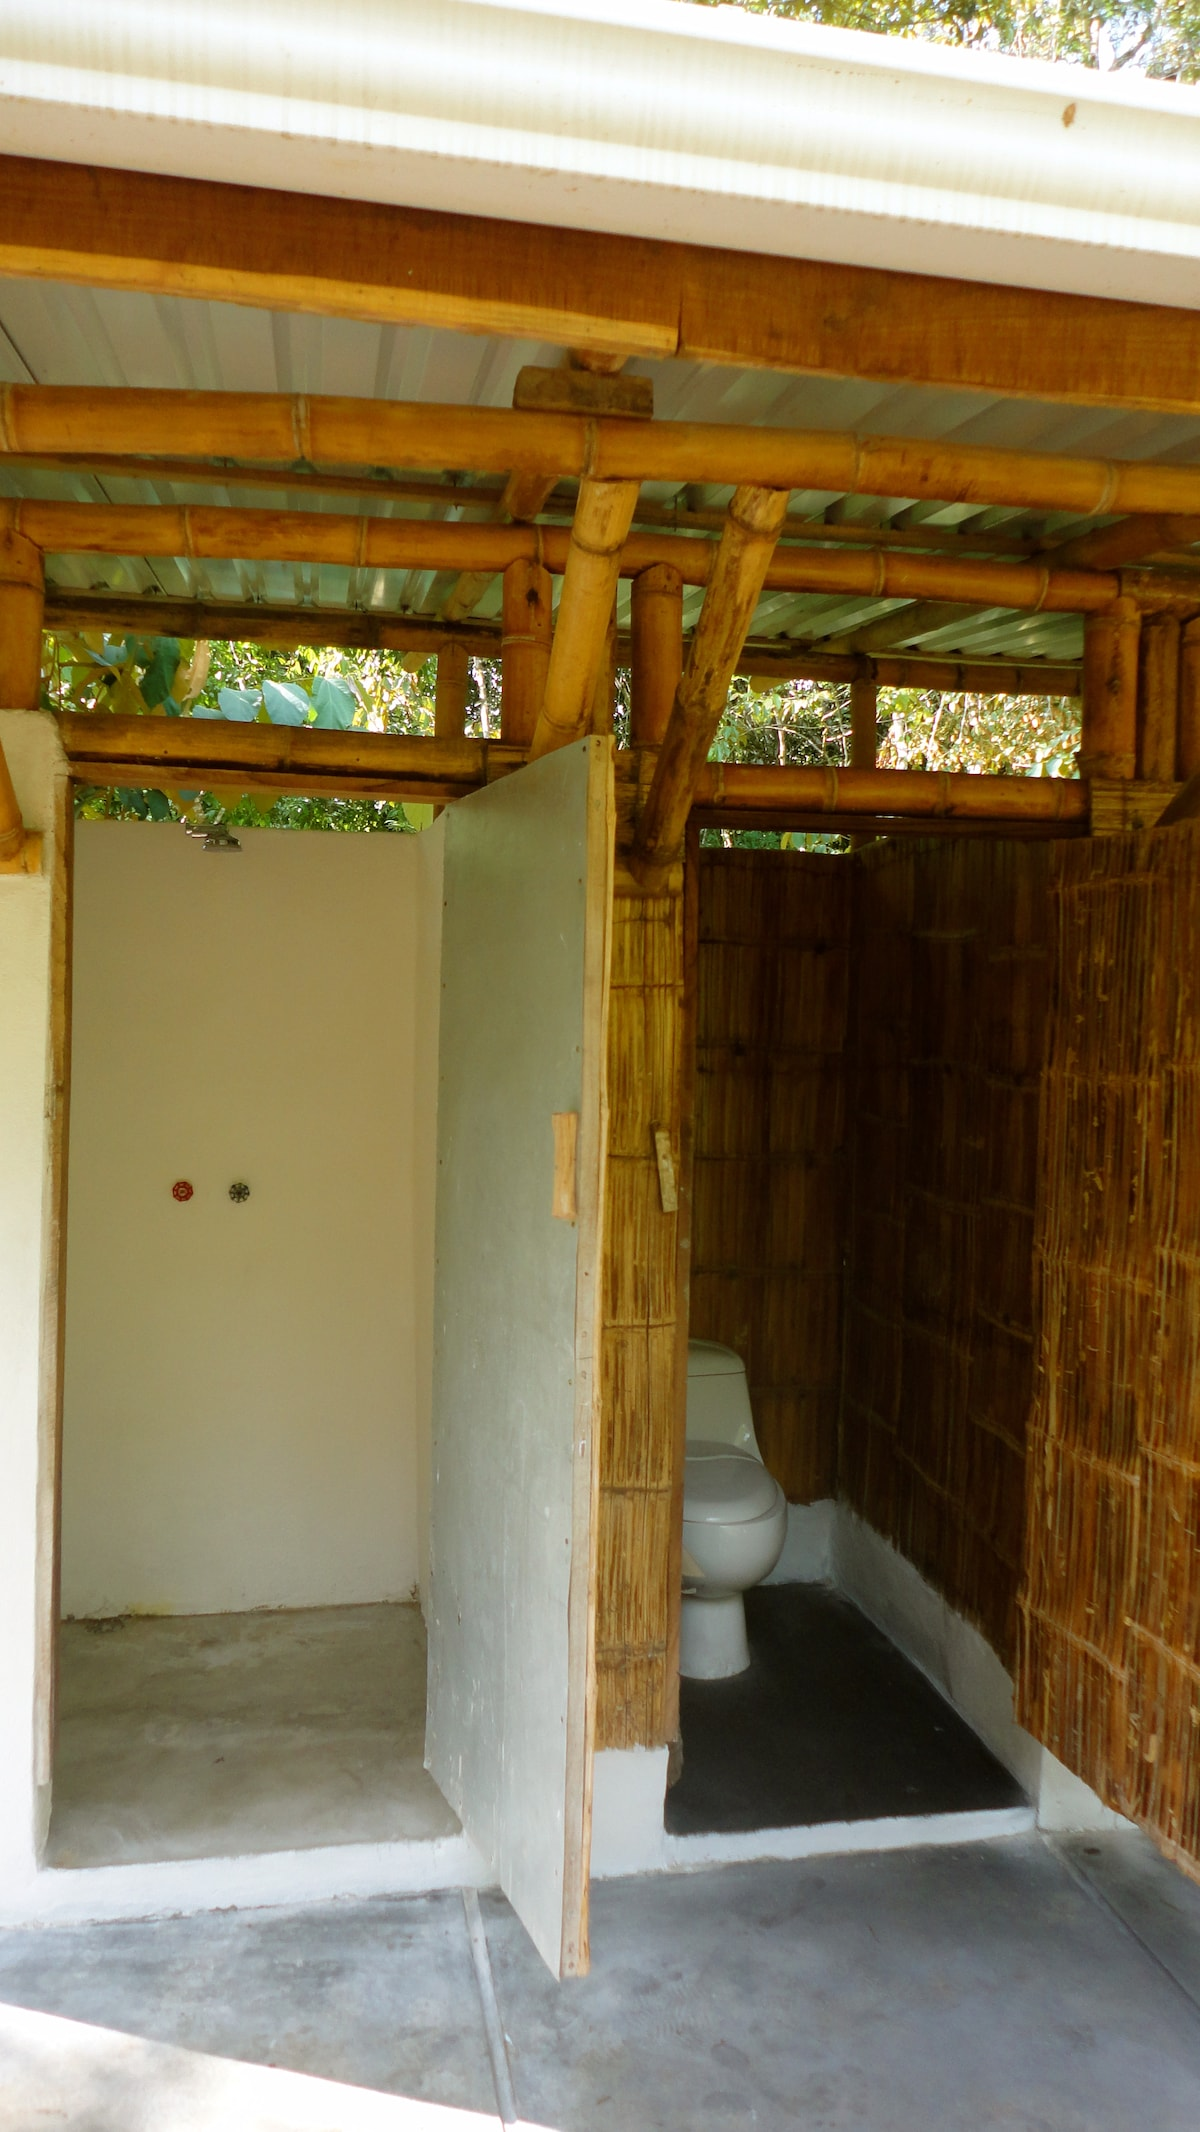 One of the private bathrooms, of concrete and bamboo, that come with each cabin.